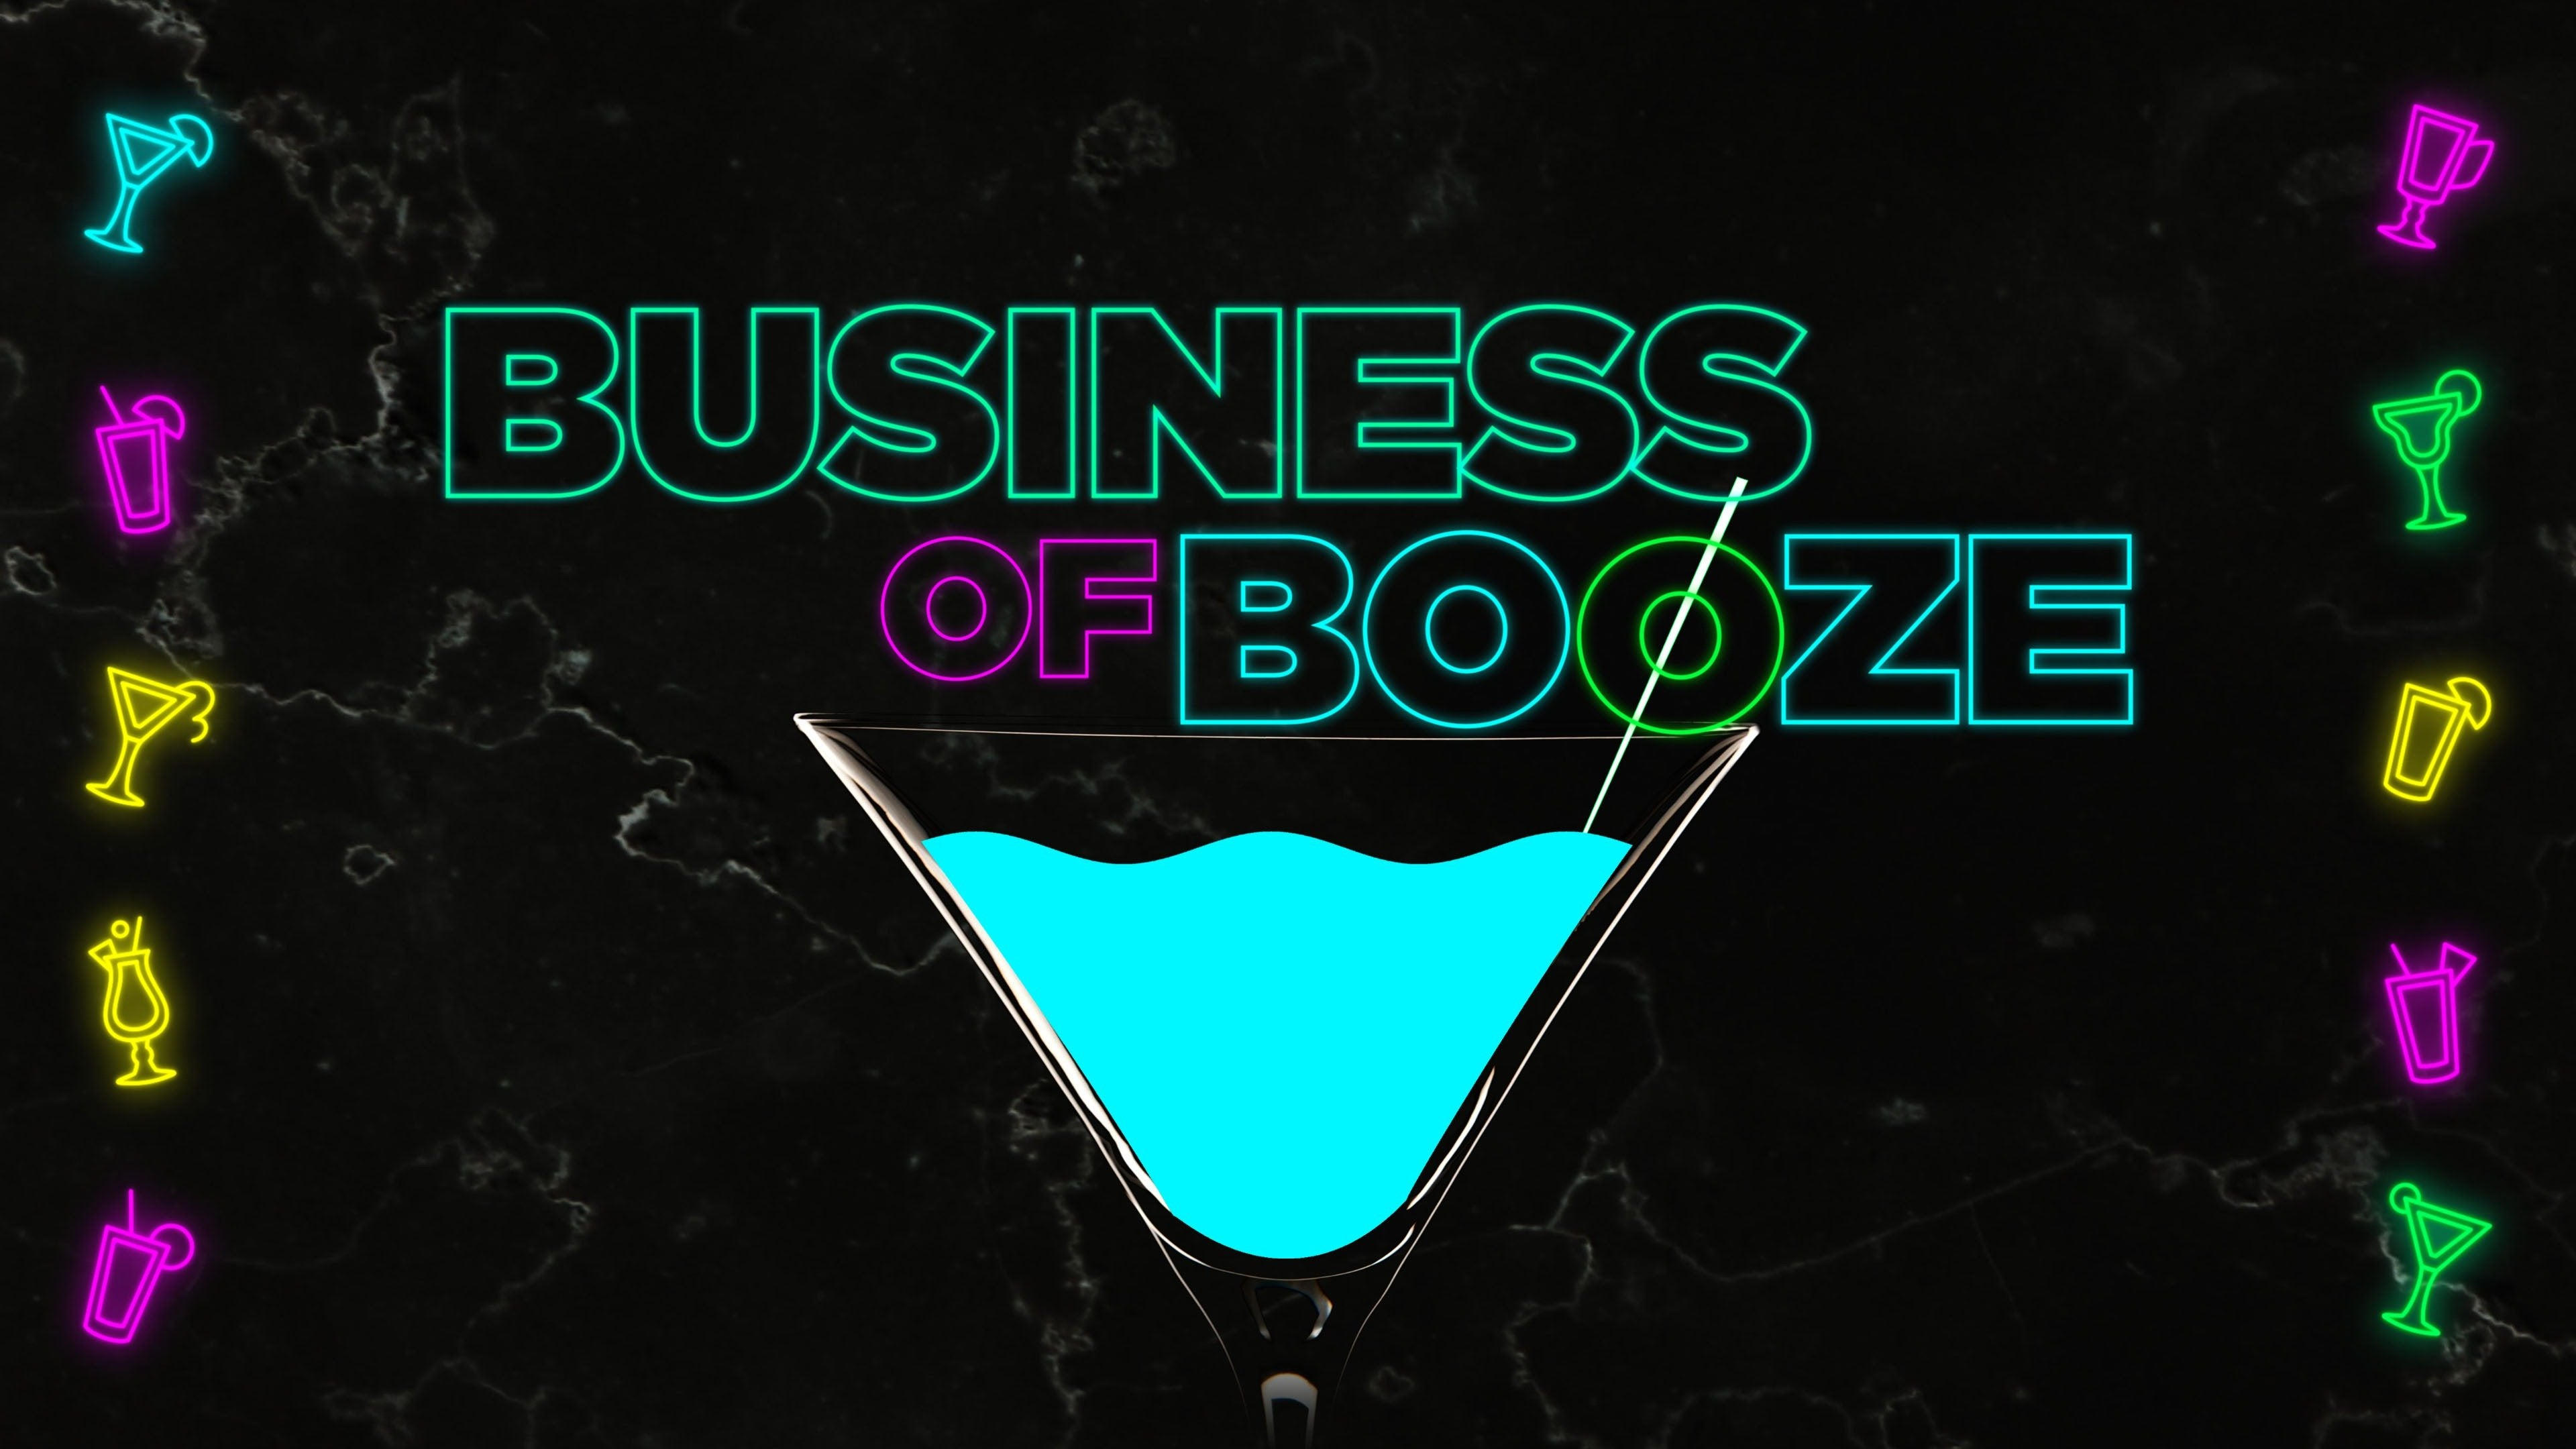 The Business of Booze